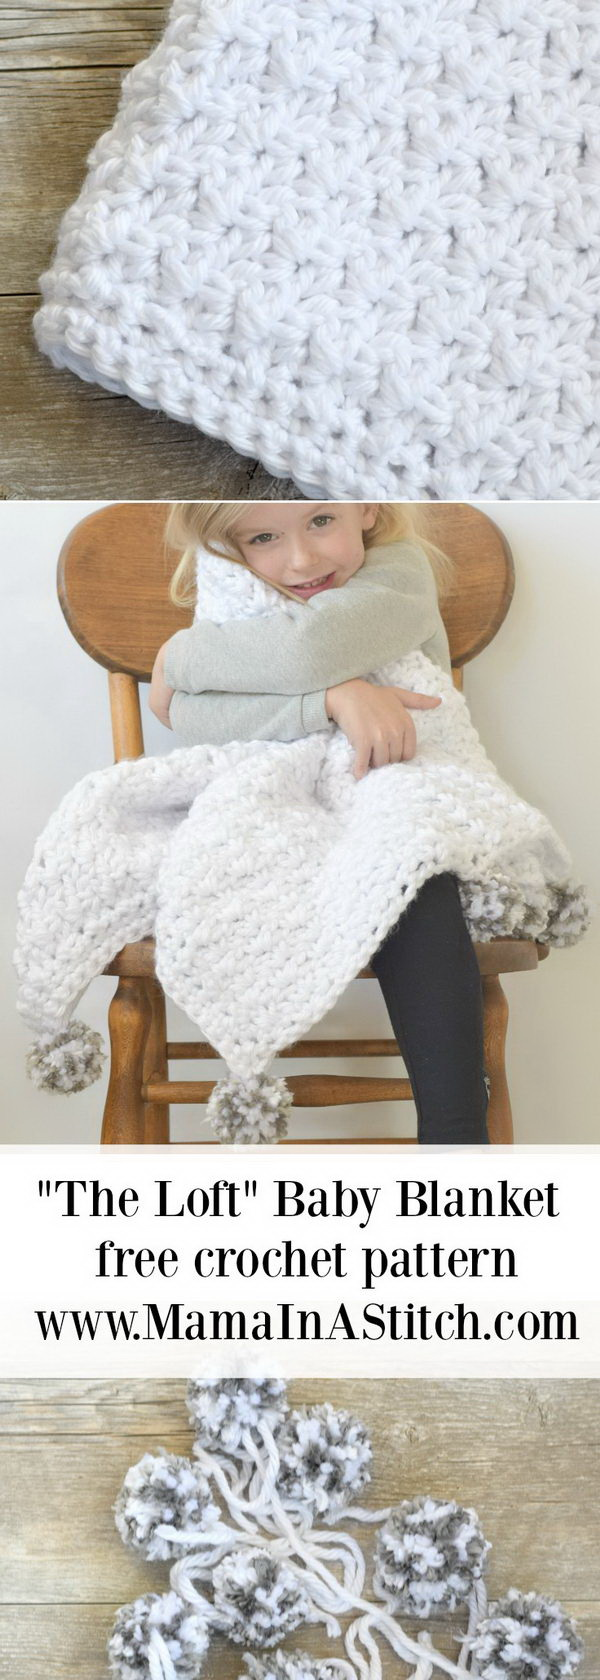 Quick And Easy Crochet Blanket Patterns For Beginners: Pom-Pom Baby Blanket Free Crochet Pattern.